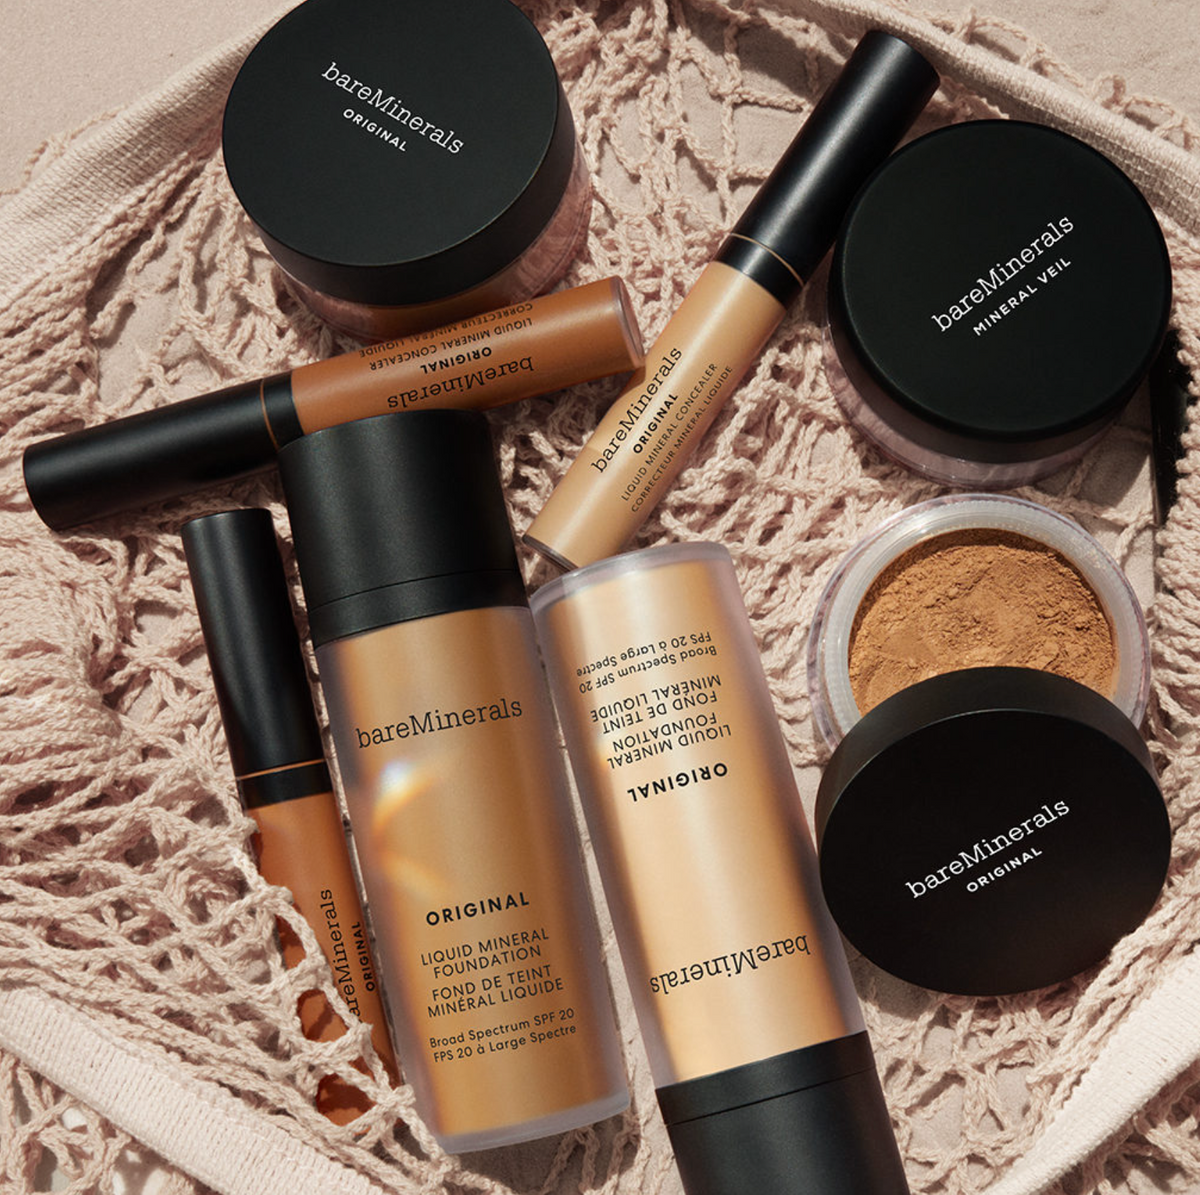 BARE MINERALS: THE POWER OF GOOD